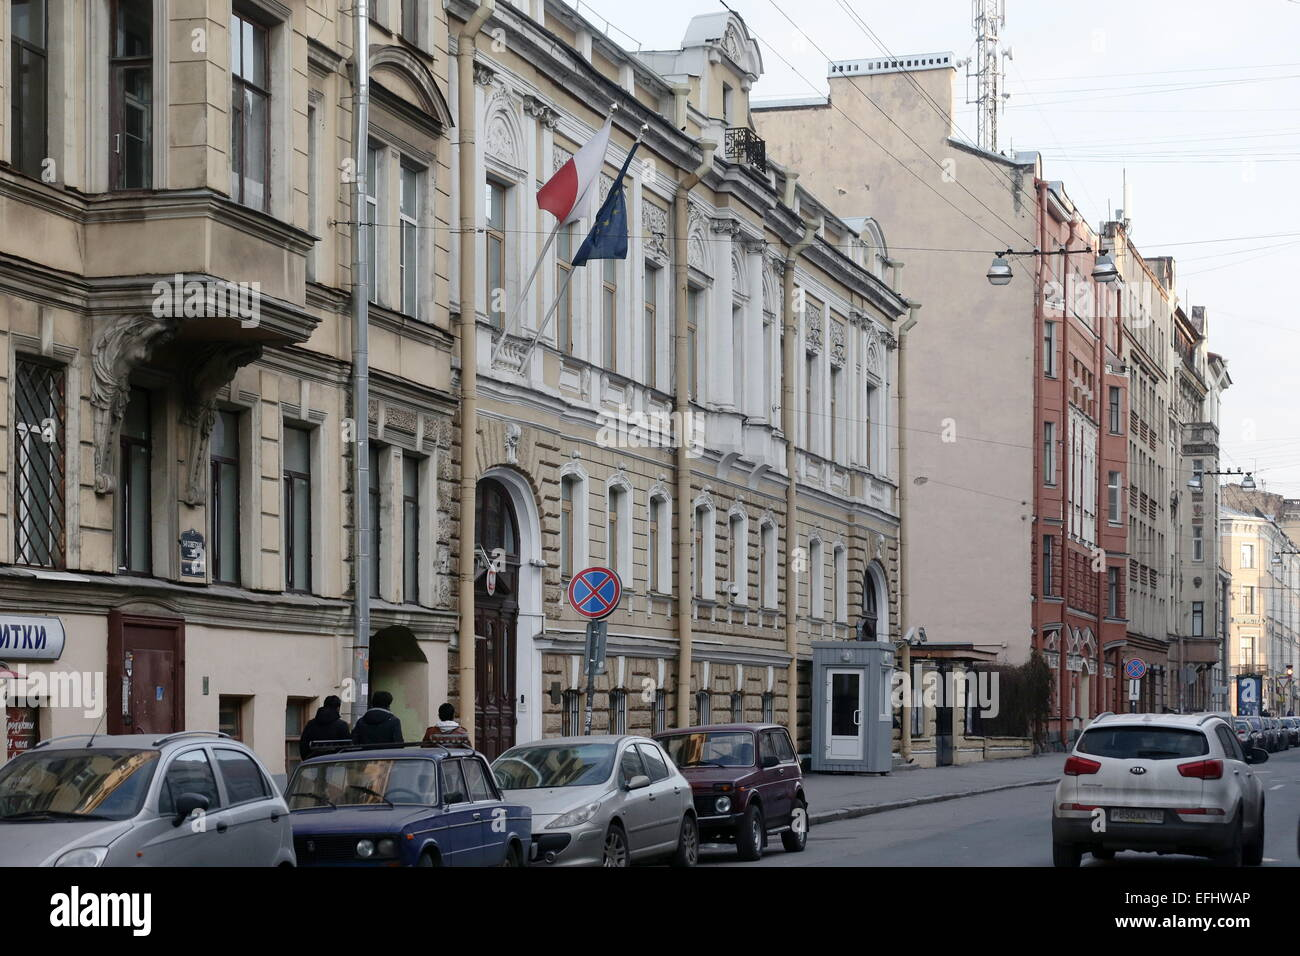 ST. PETERSBURG, RUSSIA. An image dated November 17, 2014, showing a view of a building of the Polish Consulate General - Stock Image